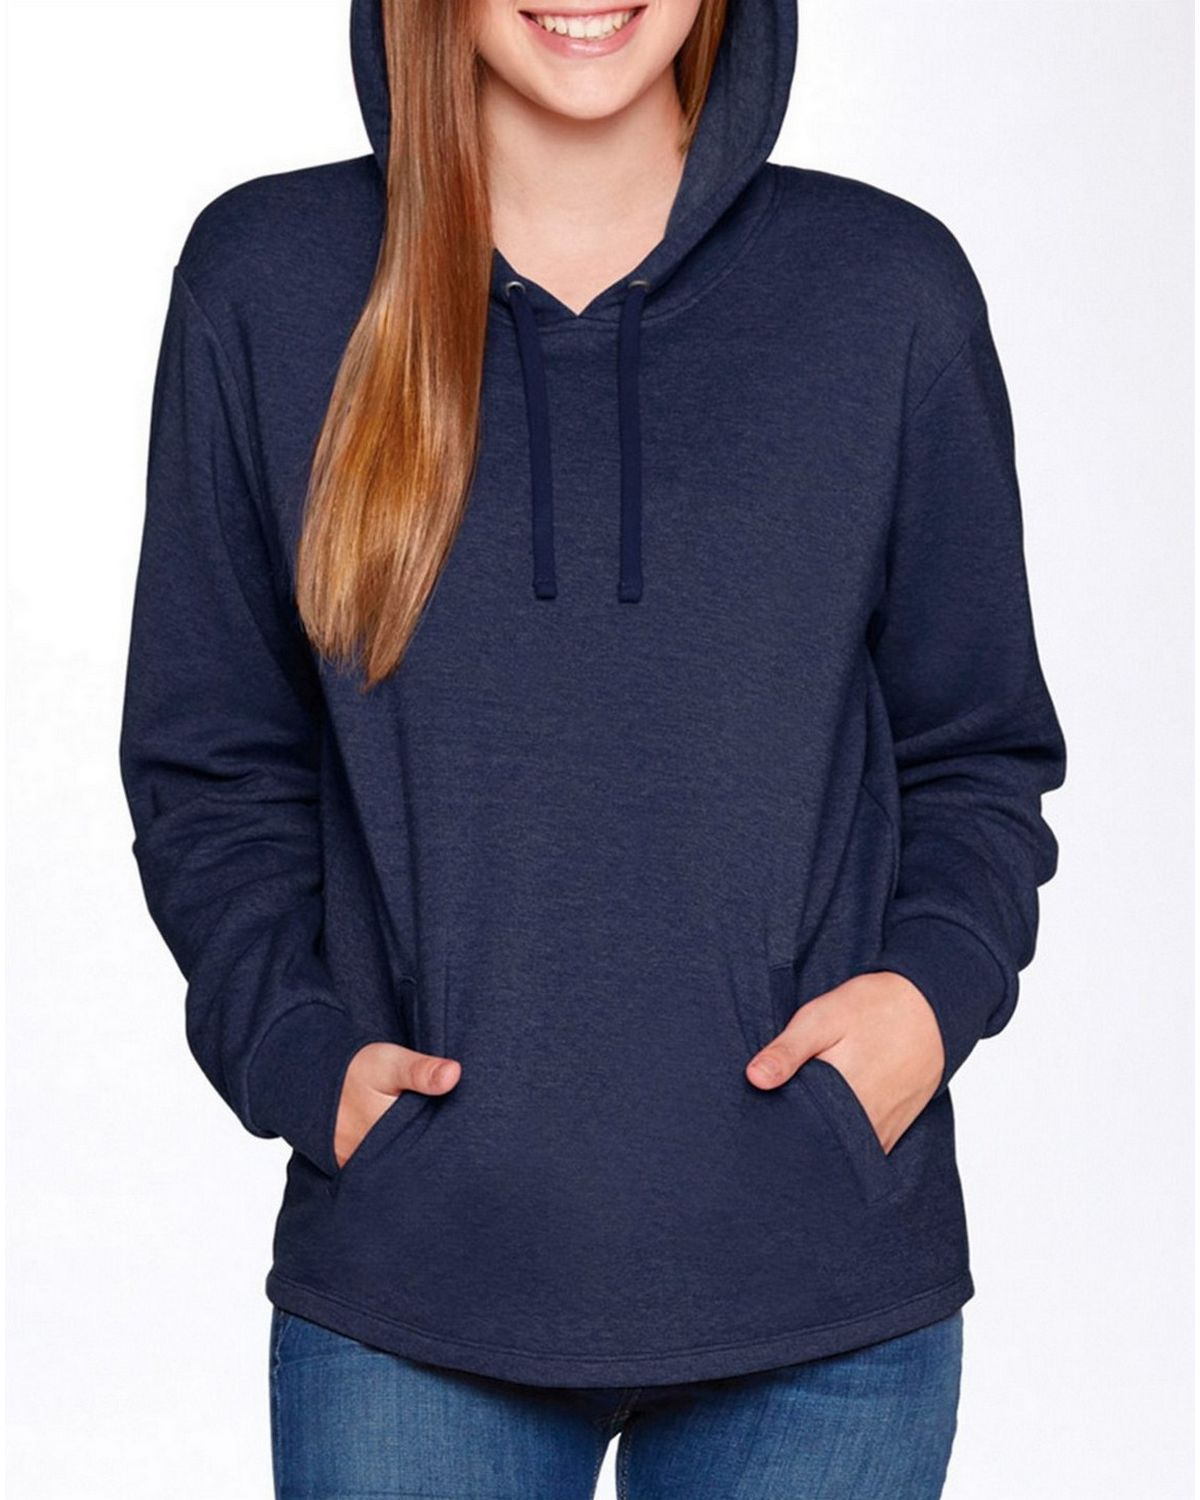 Next Level 9300 PCH Pullover Hoodie - Midnight Navy - S 9300